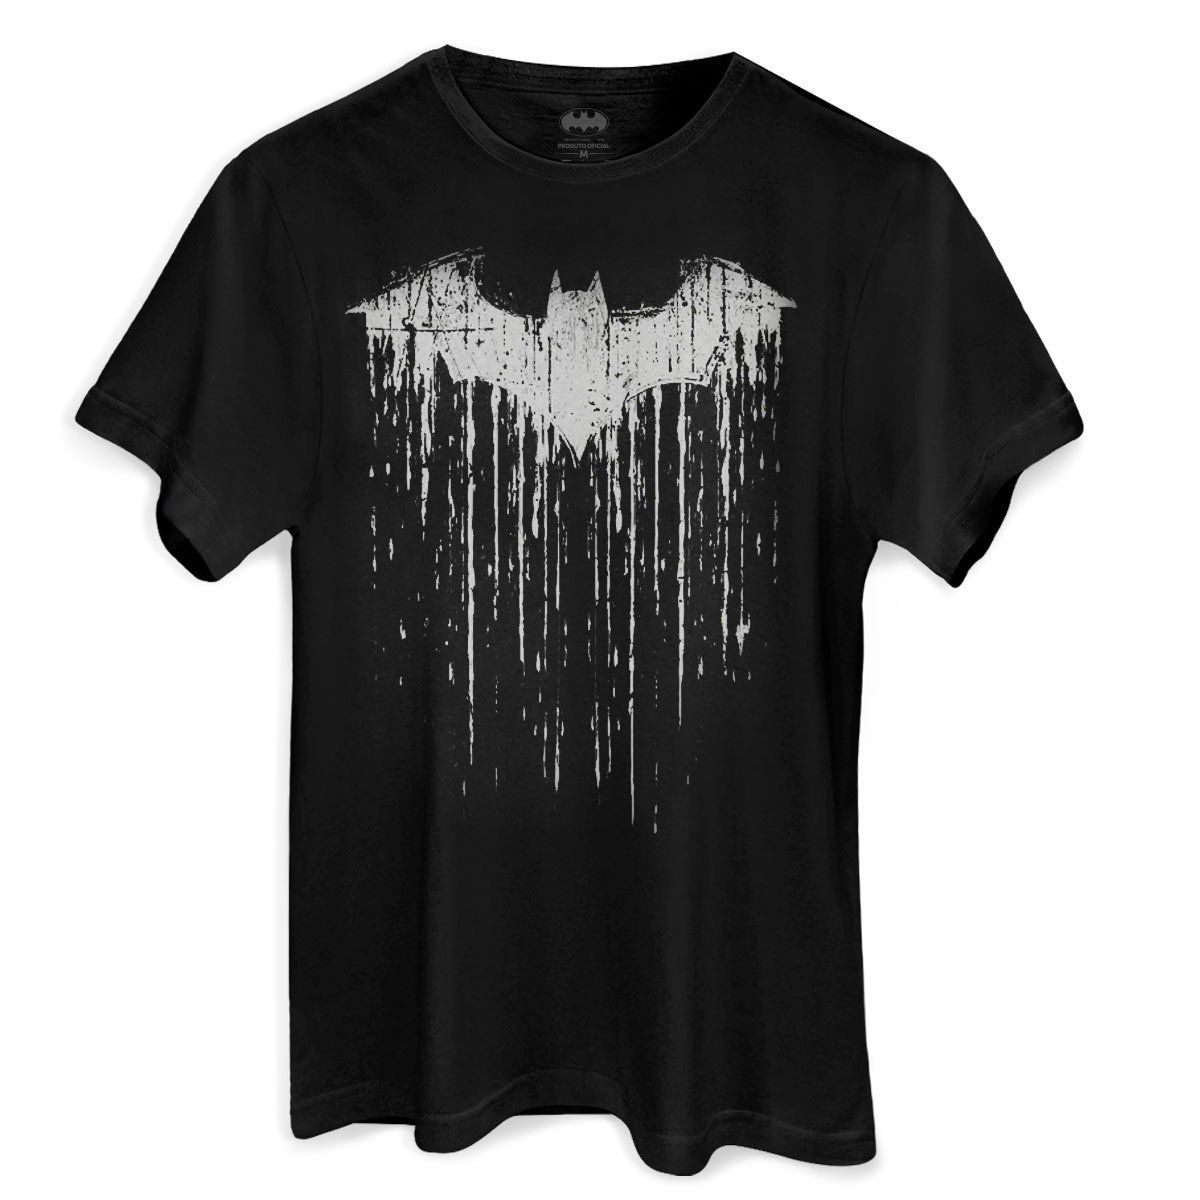 Camiseta Masculina Batman Bat Melting Oficial  - bandUP Store Marketplace